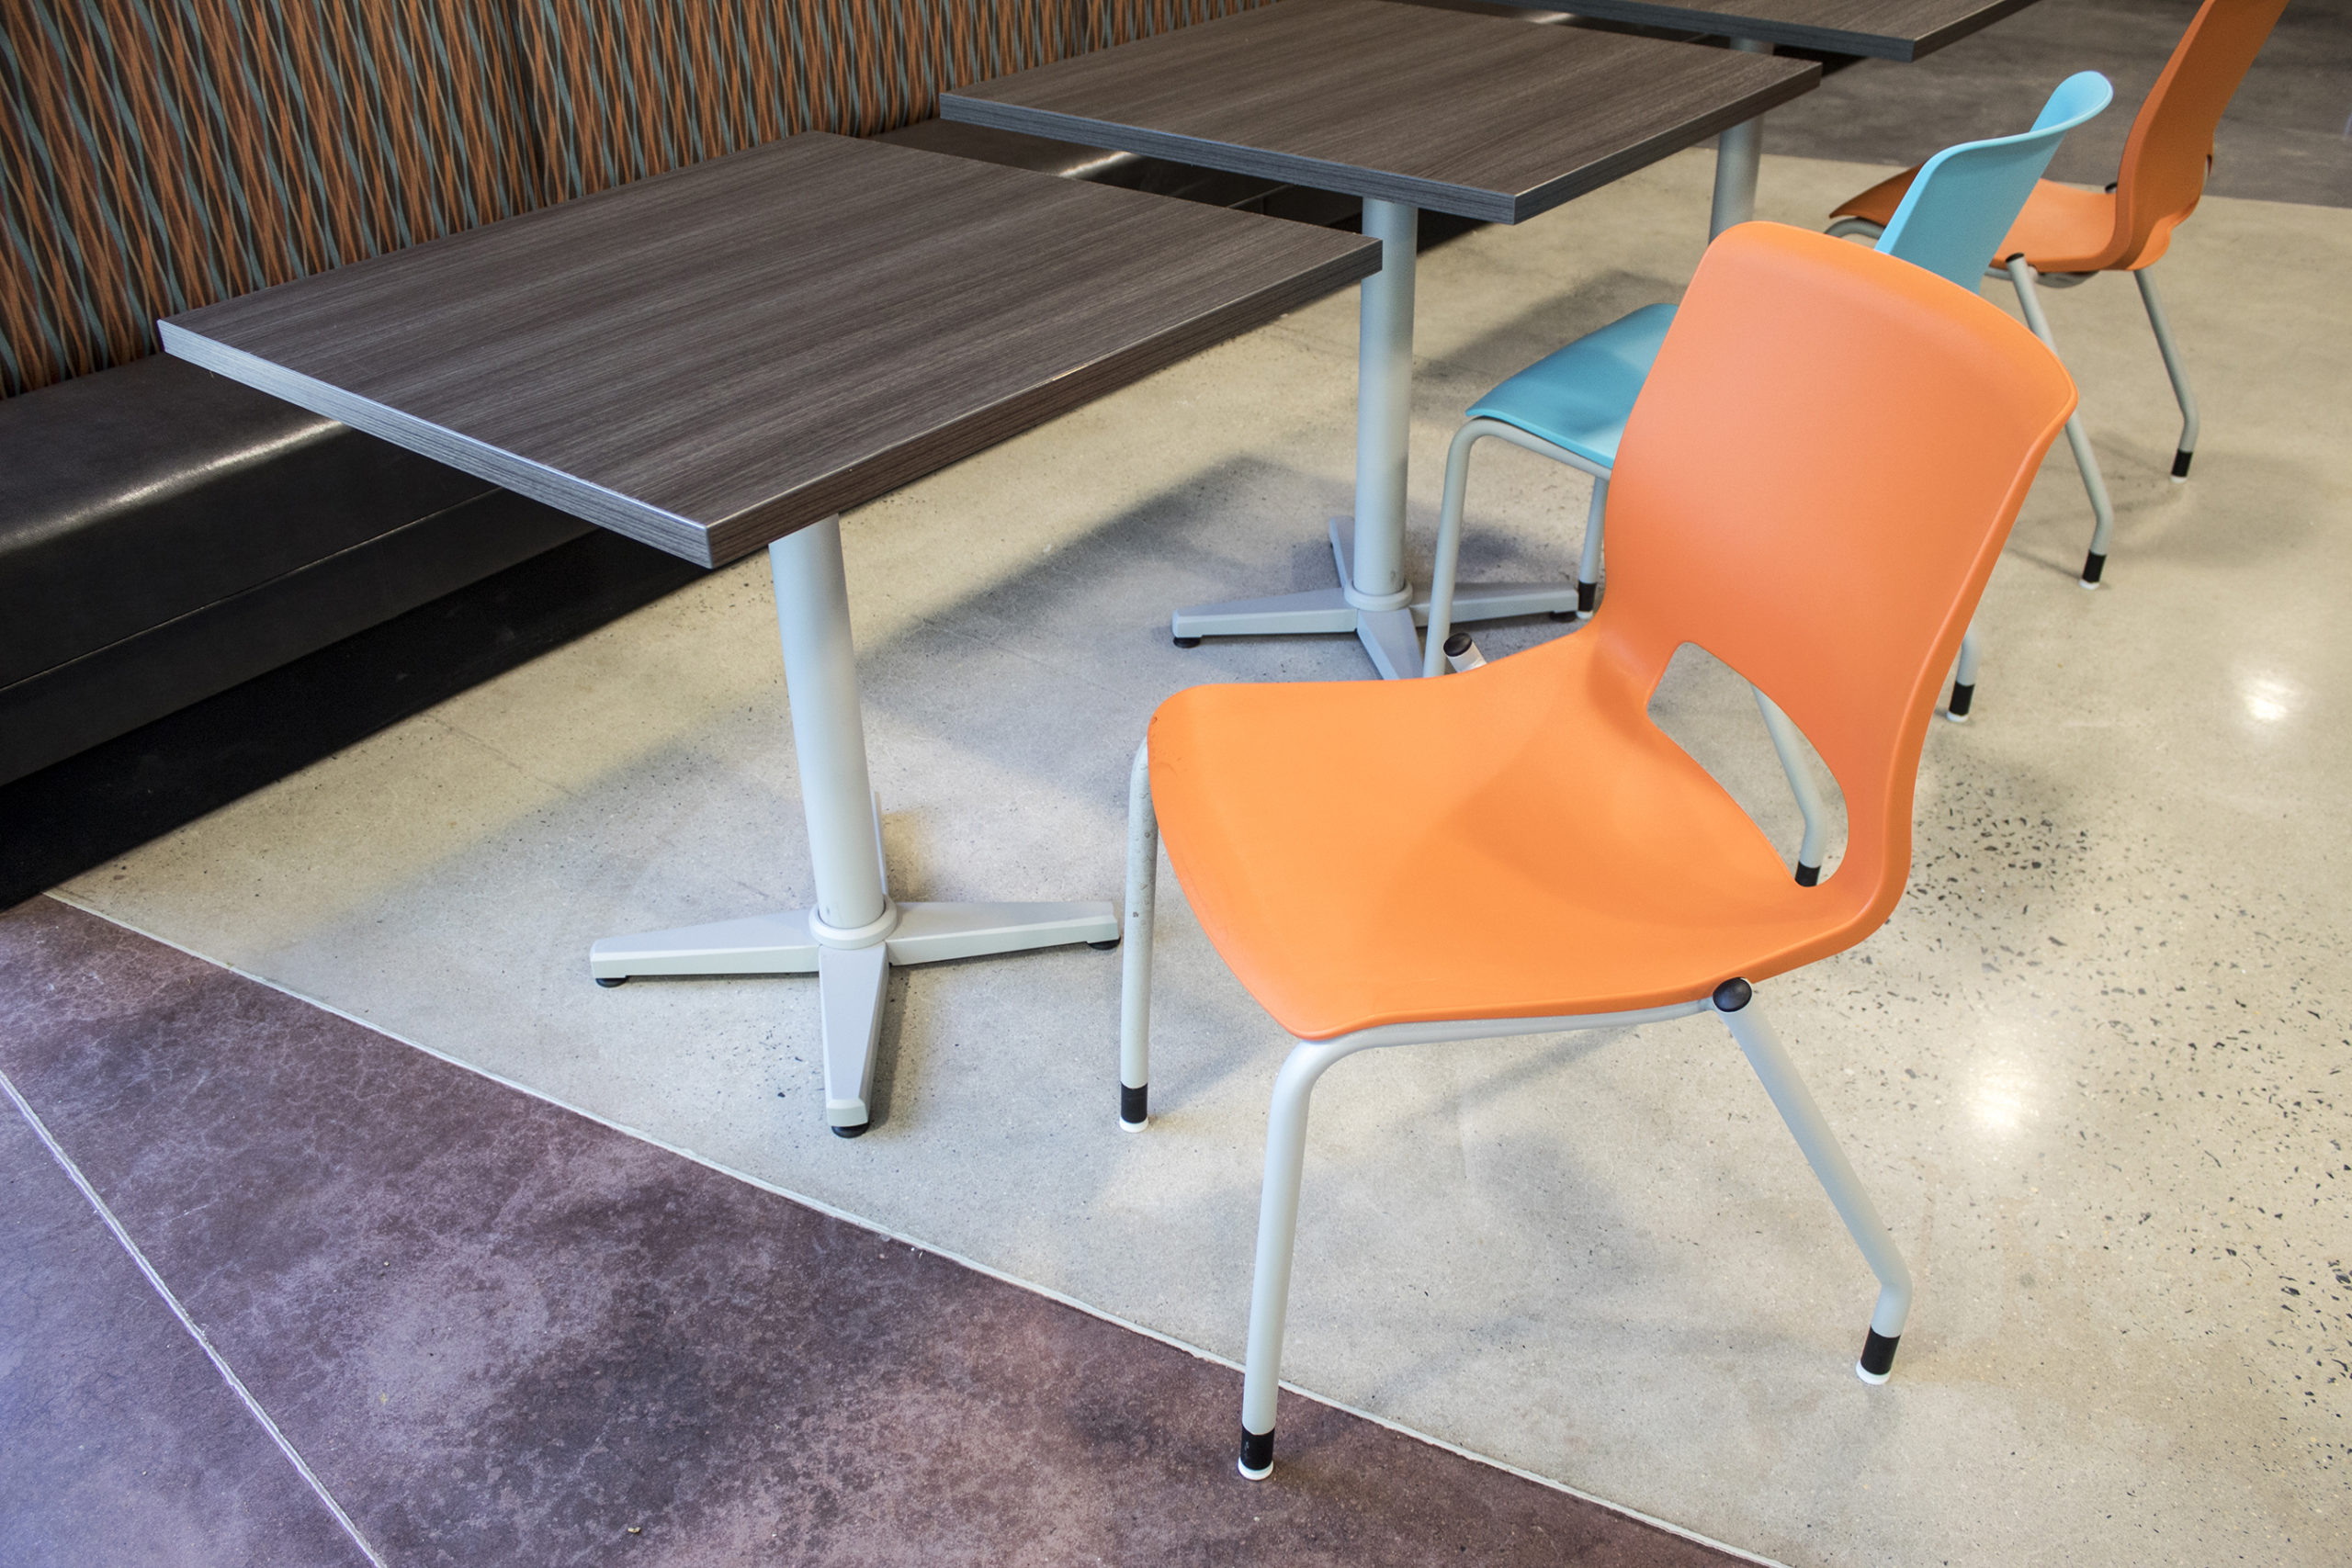 Employee Breakroom Chair and Table Closeup 2